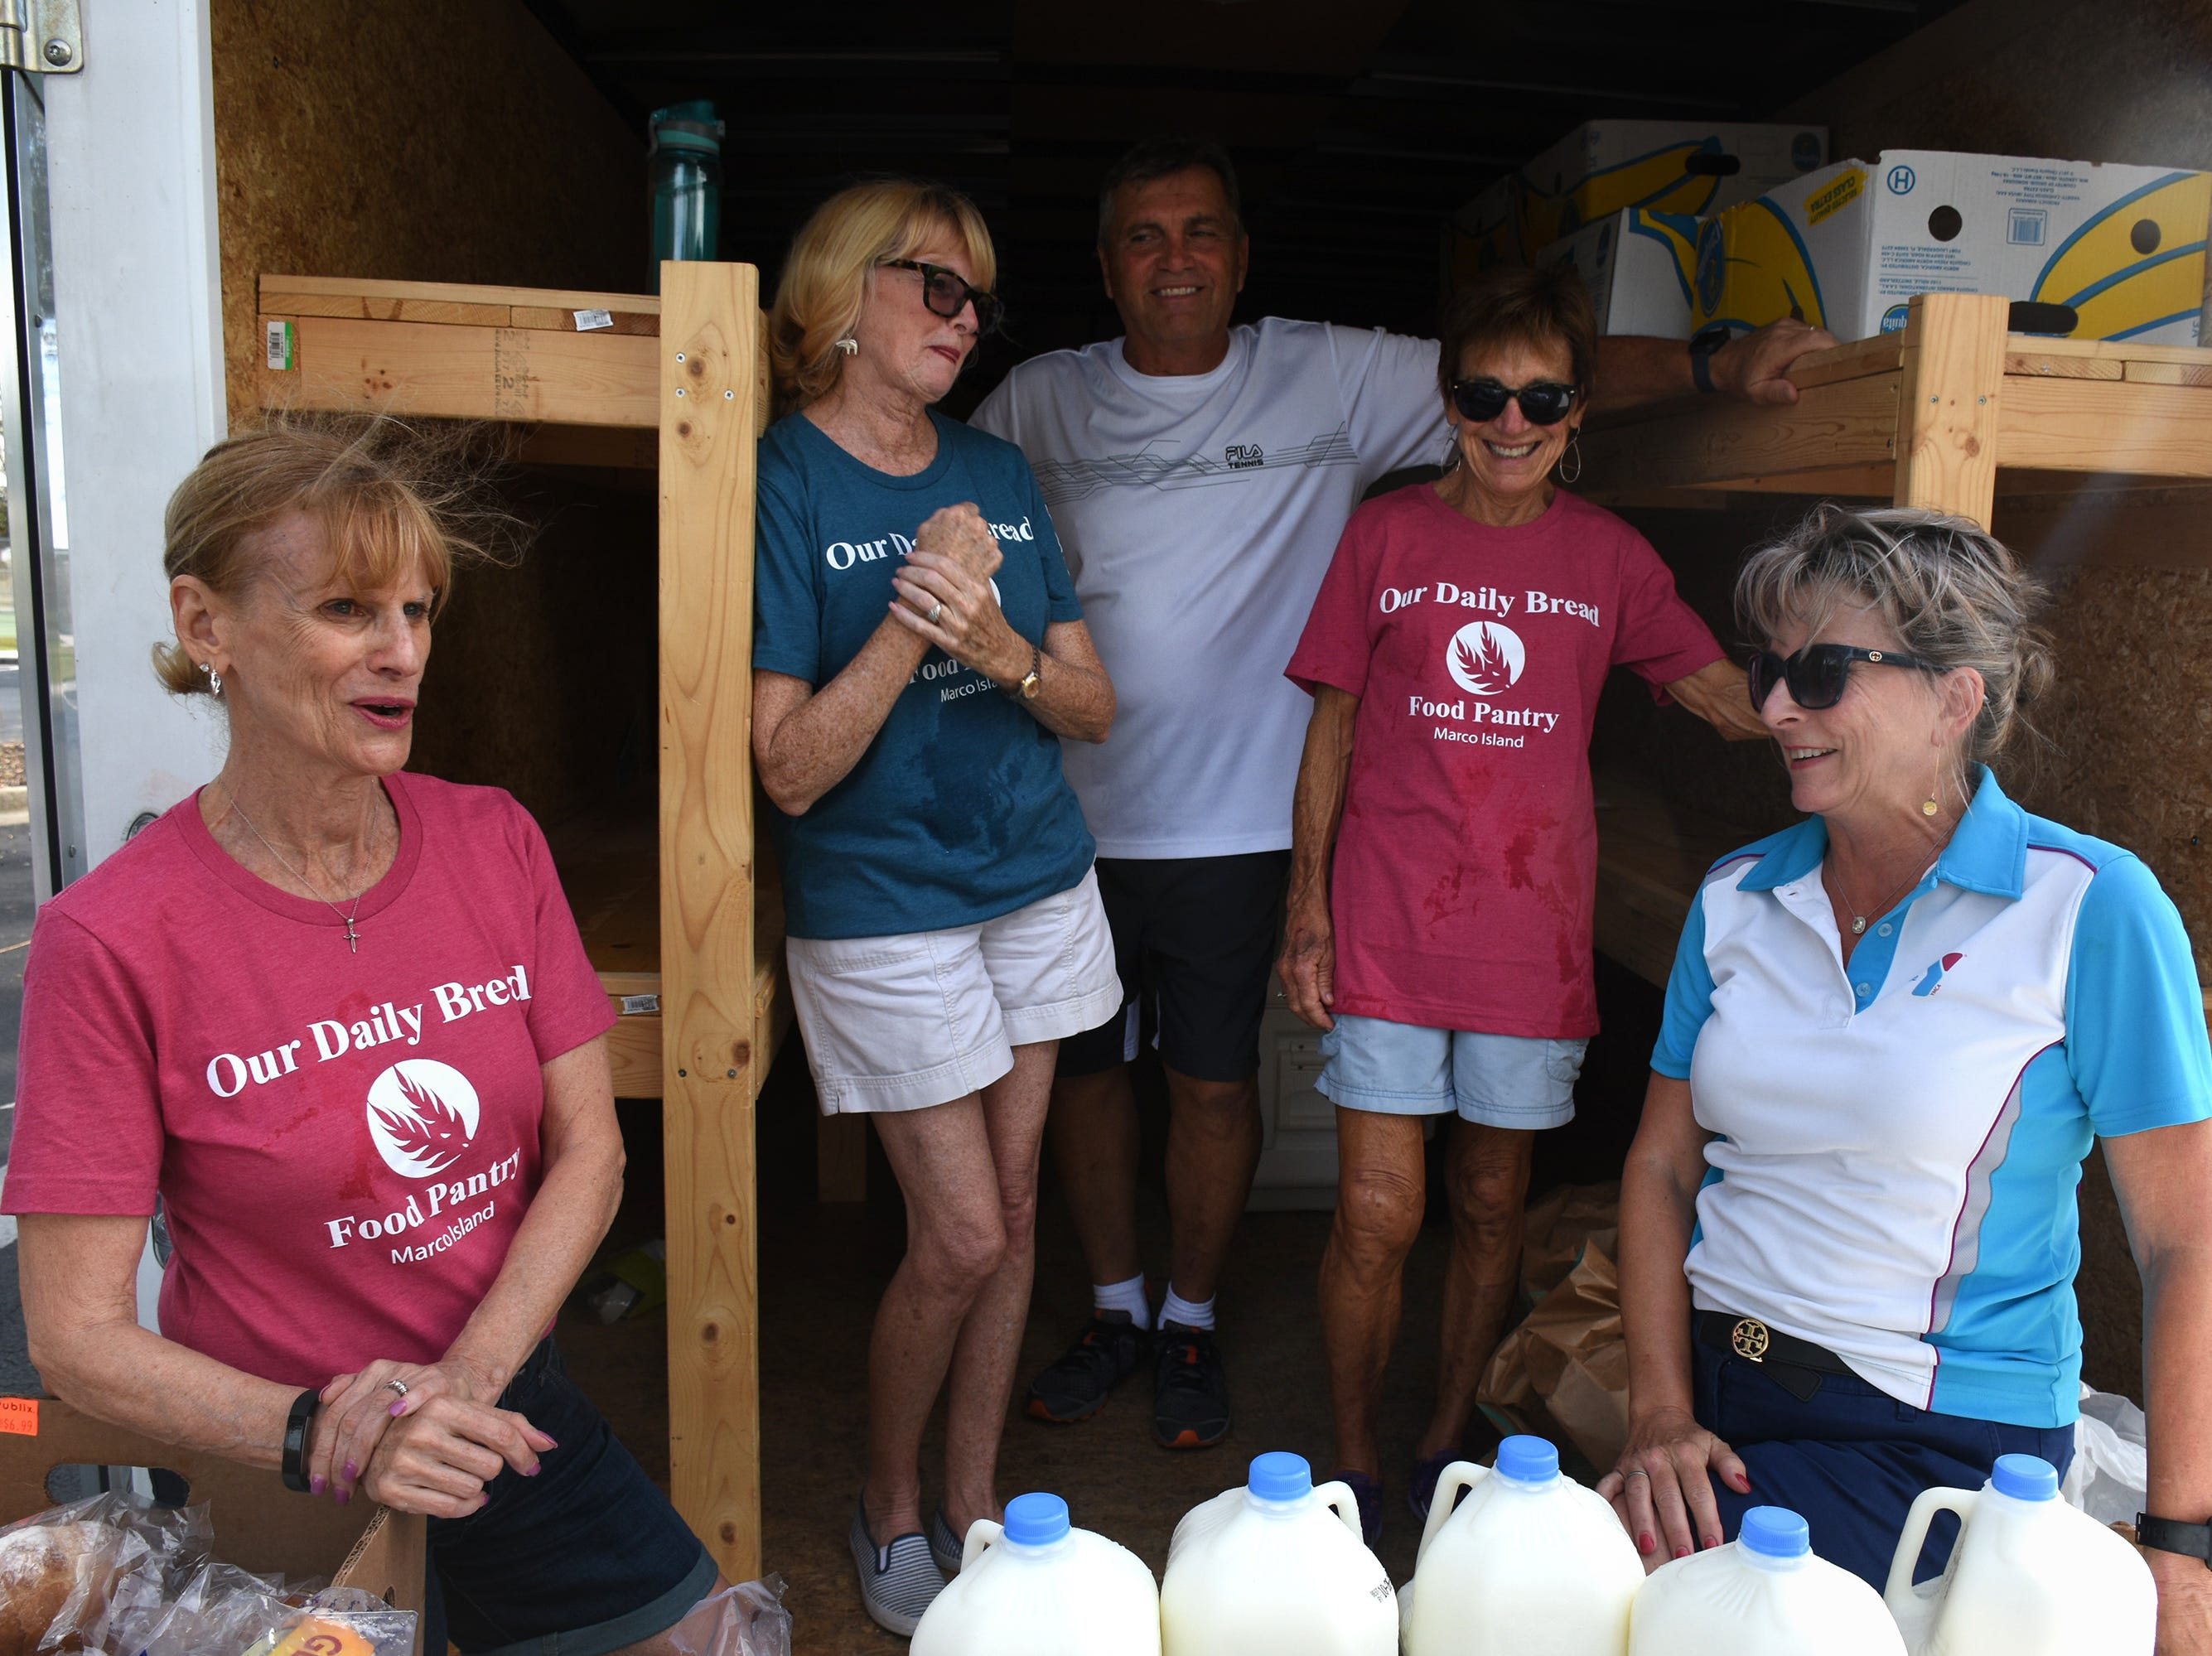 Al's Pals members Lorraine Corva, from left, Patti Porter, Rick Marcantonio, Tricia Simmler and Allyson Richards. A group of Marco Island volunteers conducts a food pantry Friday afternoon at Manatee Middle School.